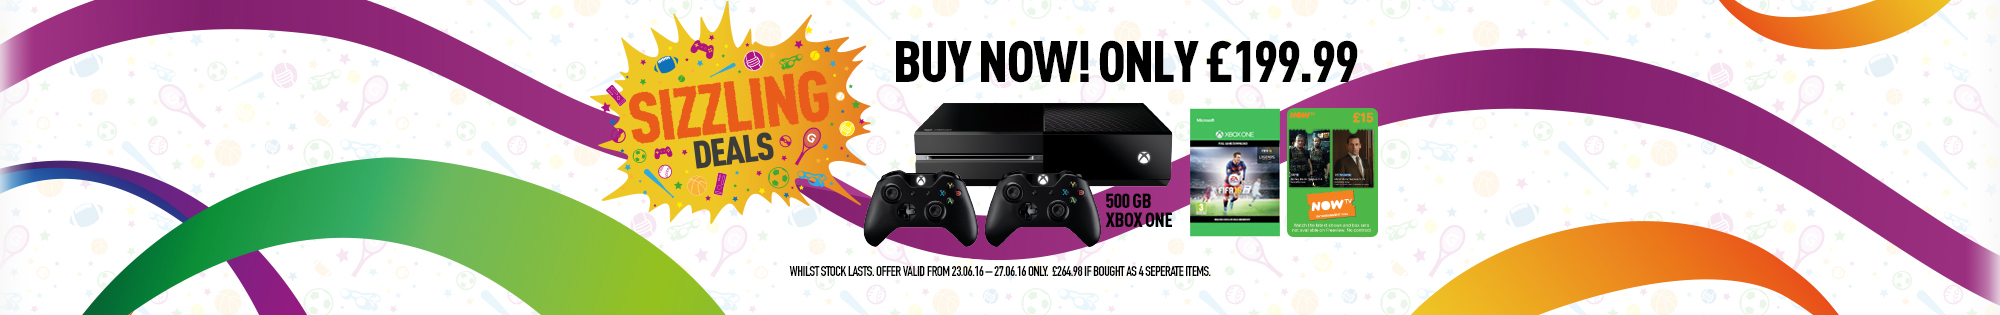 Sizzling Deals Xbox One Console Deal Only At GAME - Buy Now at GAME.co.uk!